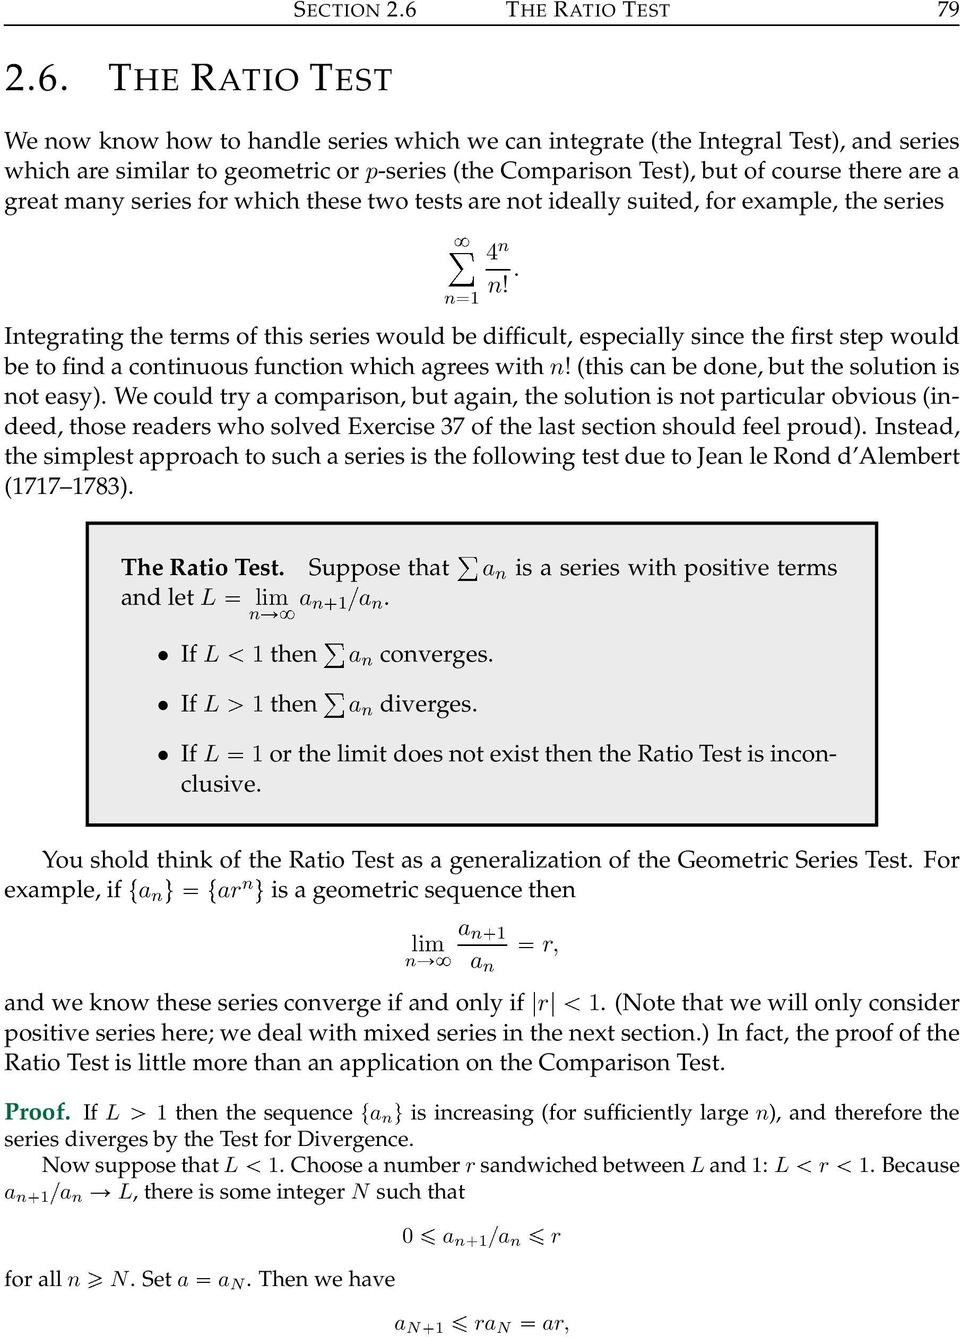 THE RATIO TEST We ow kow how to hadle series which we ca itegrate (the Itegral Test), ad series which are similar to geometric or p-series (the Compariso Test), but of course there are a great may